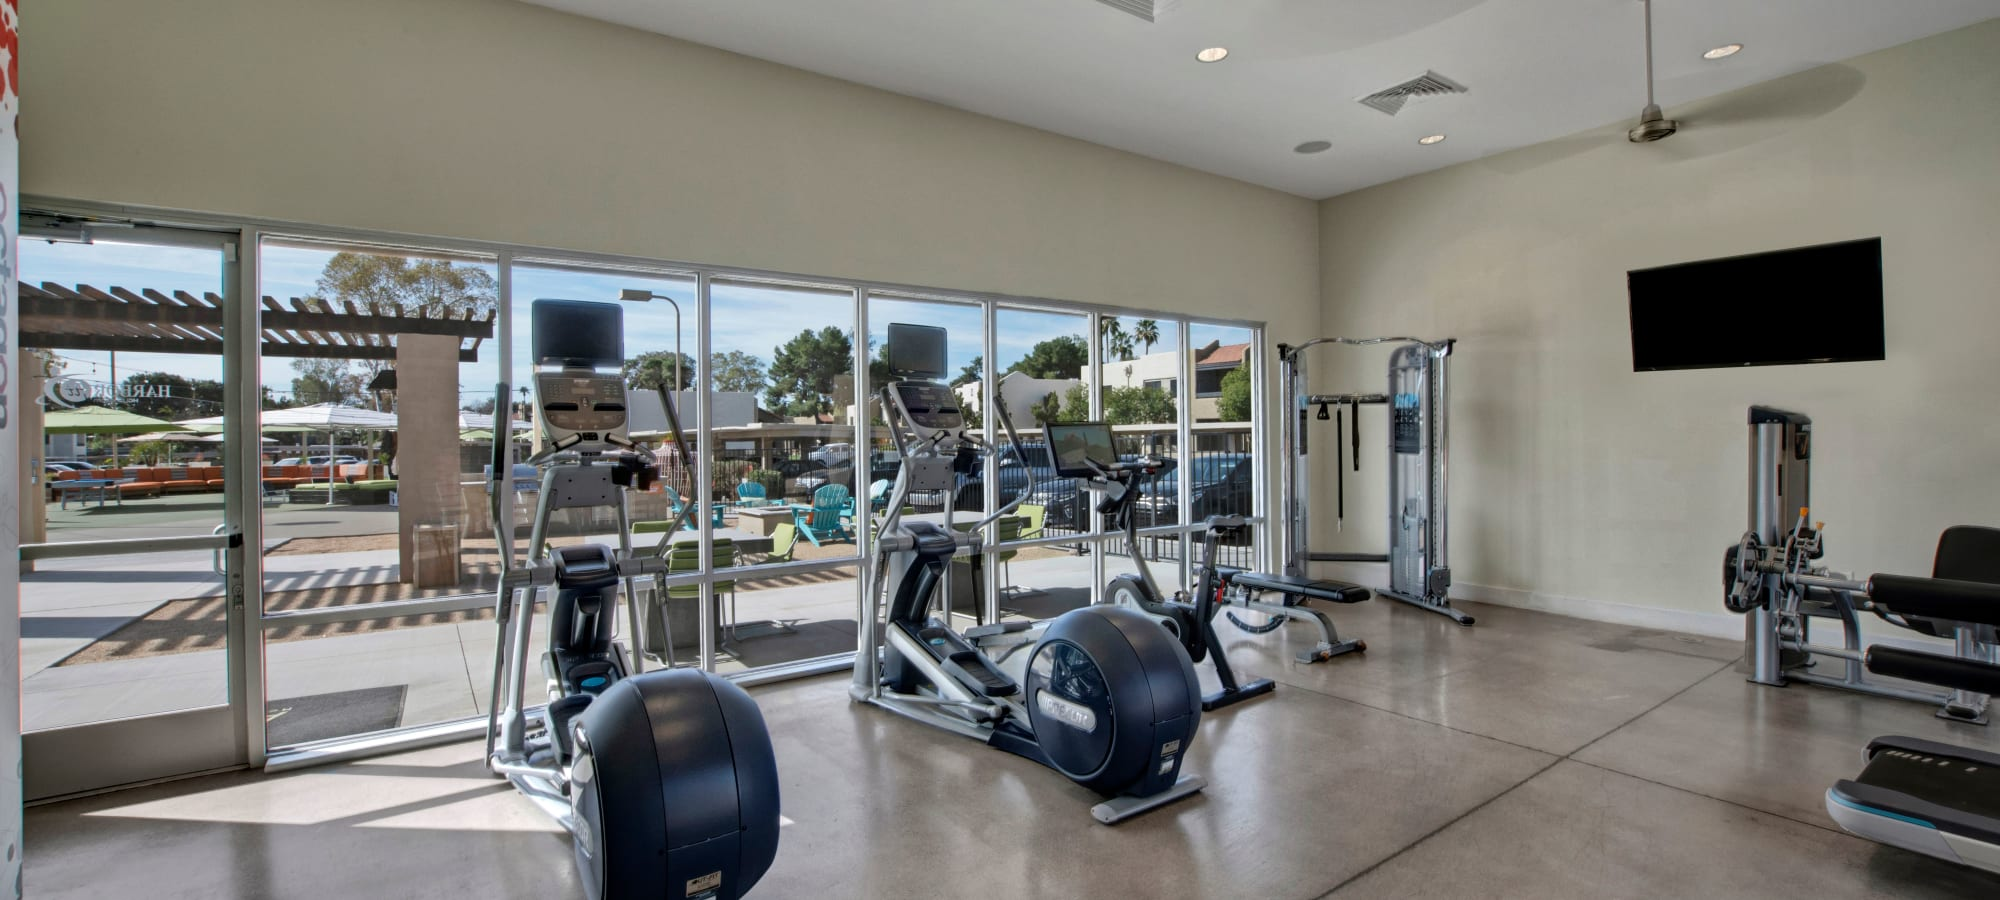 Gym area at Avia McCormick Ranch Apartments in Scottsdale, Arizona